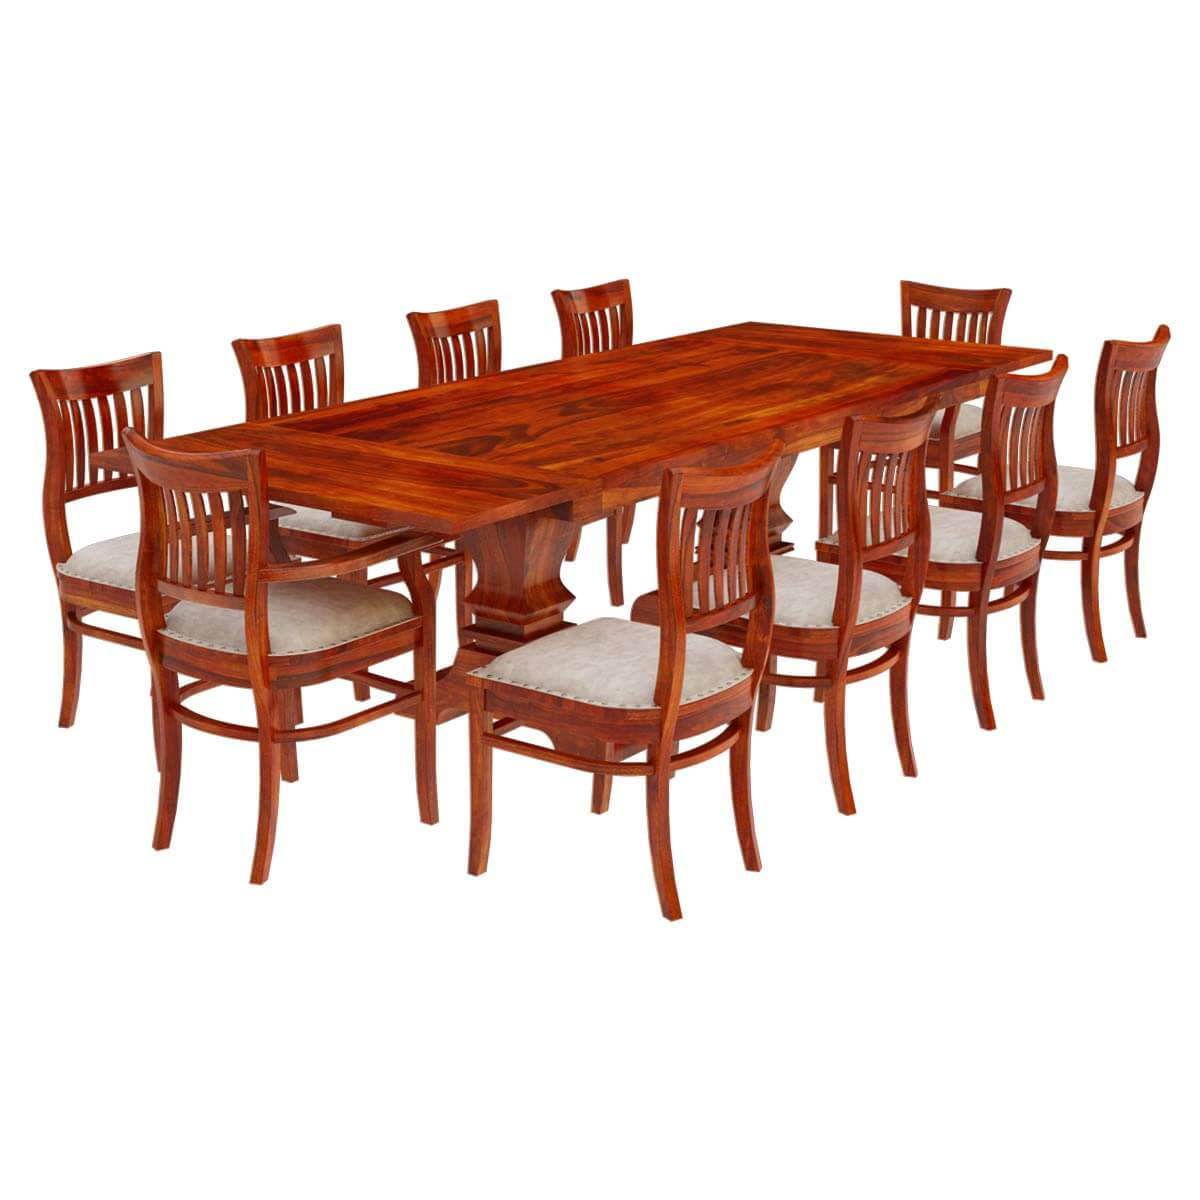 Dining Room Set For 12: Chantilly Chic Handcrafted Rosewood 12 Piece Dining Room Set